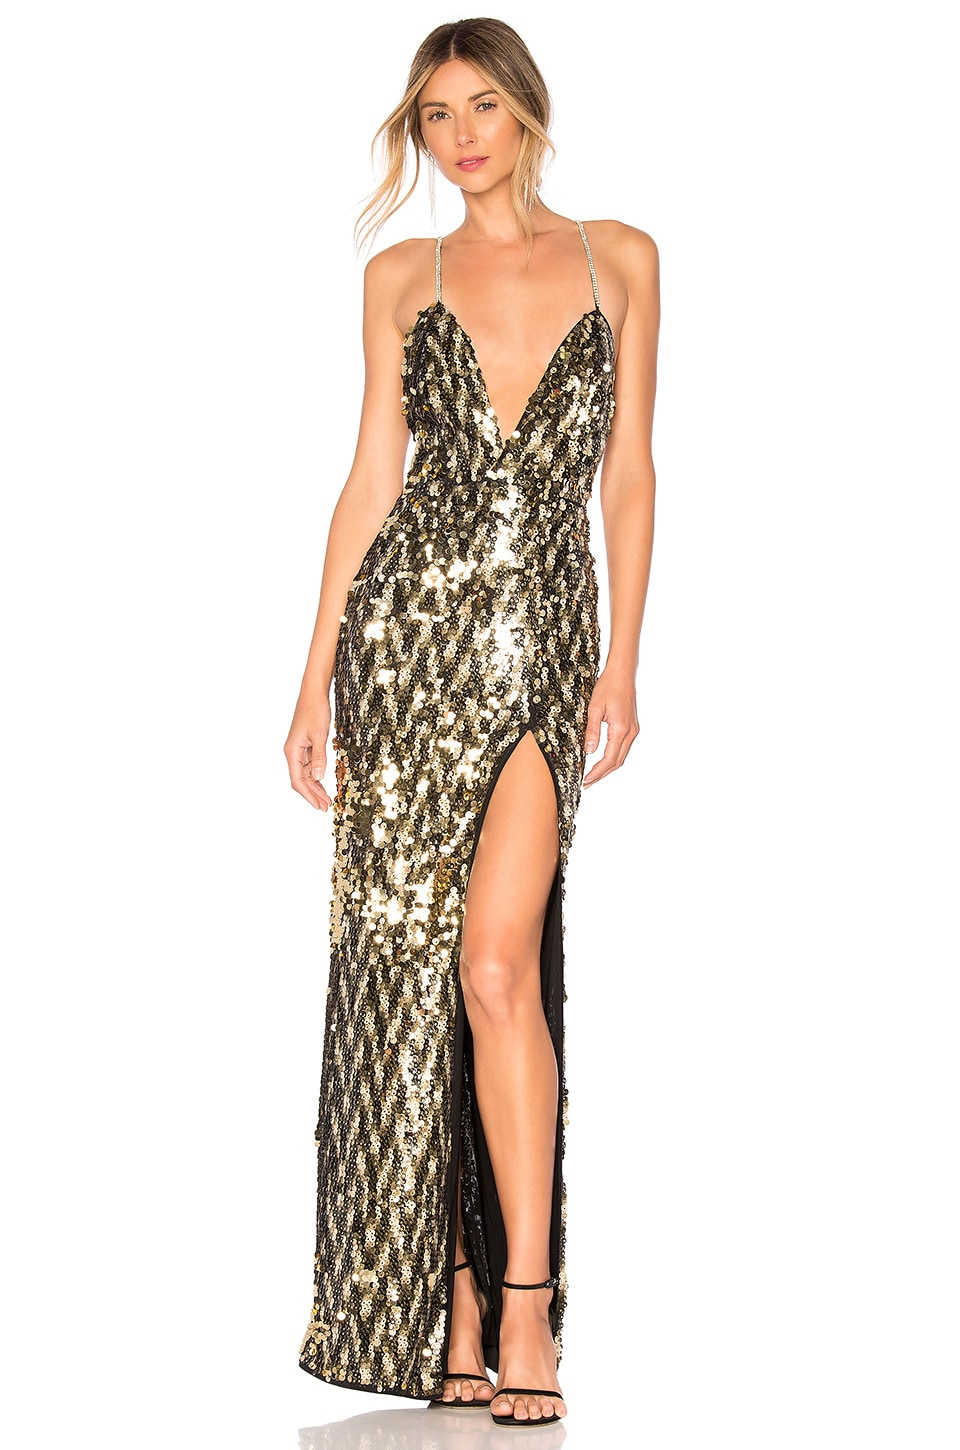 Michael Costello x REVOLVE Sydney Gown in Gold Star